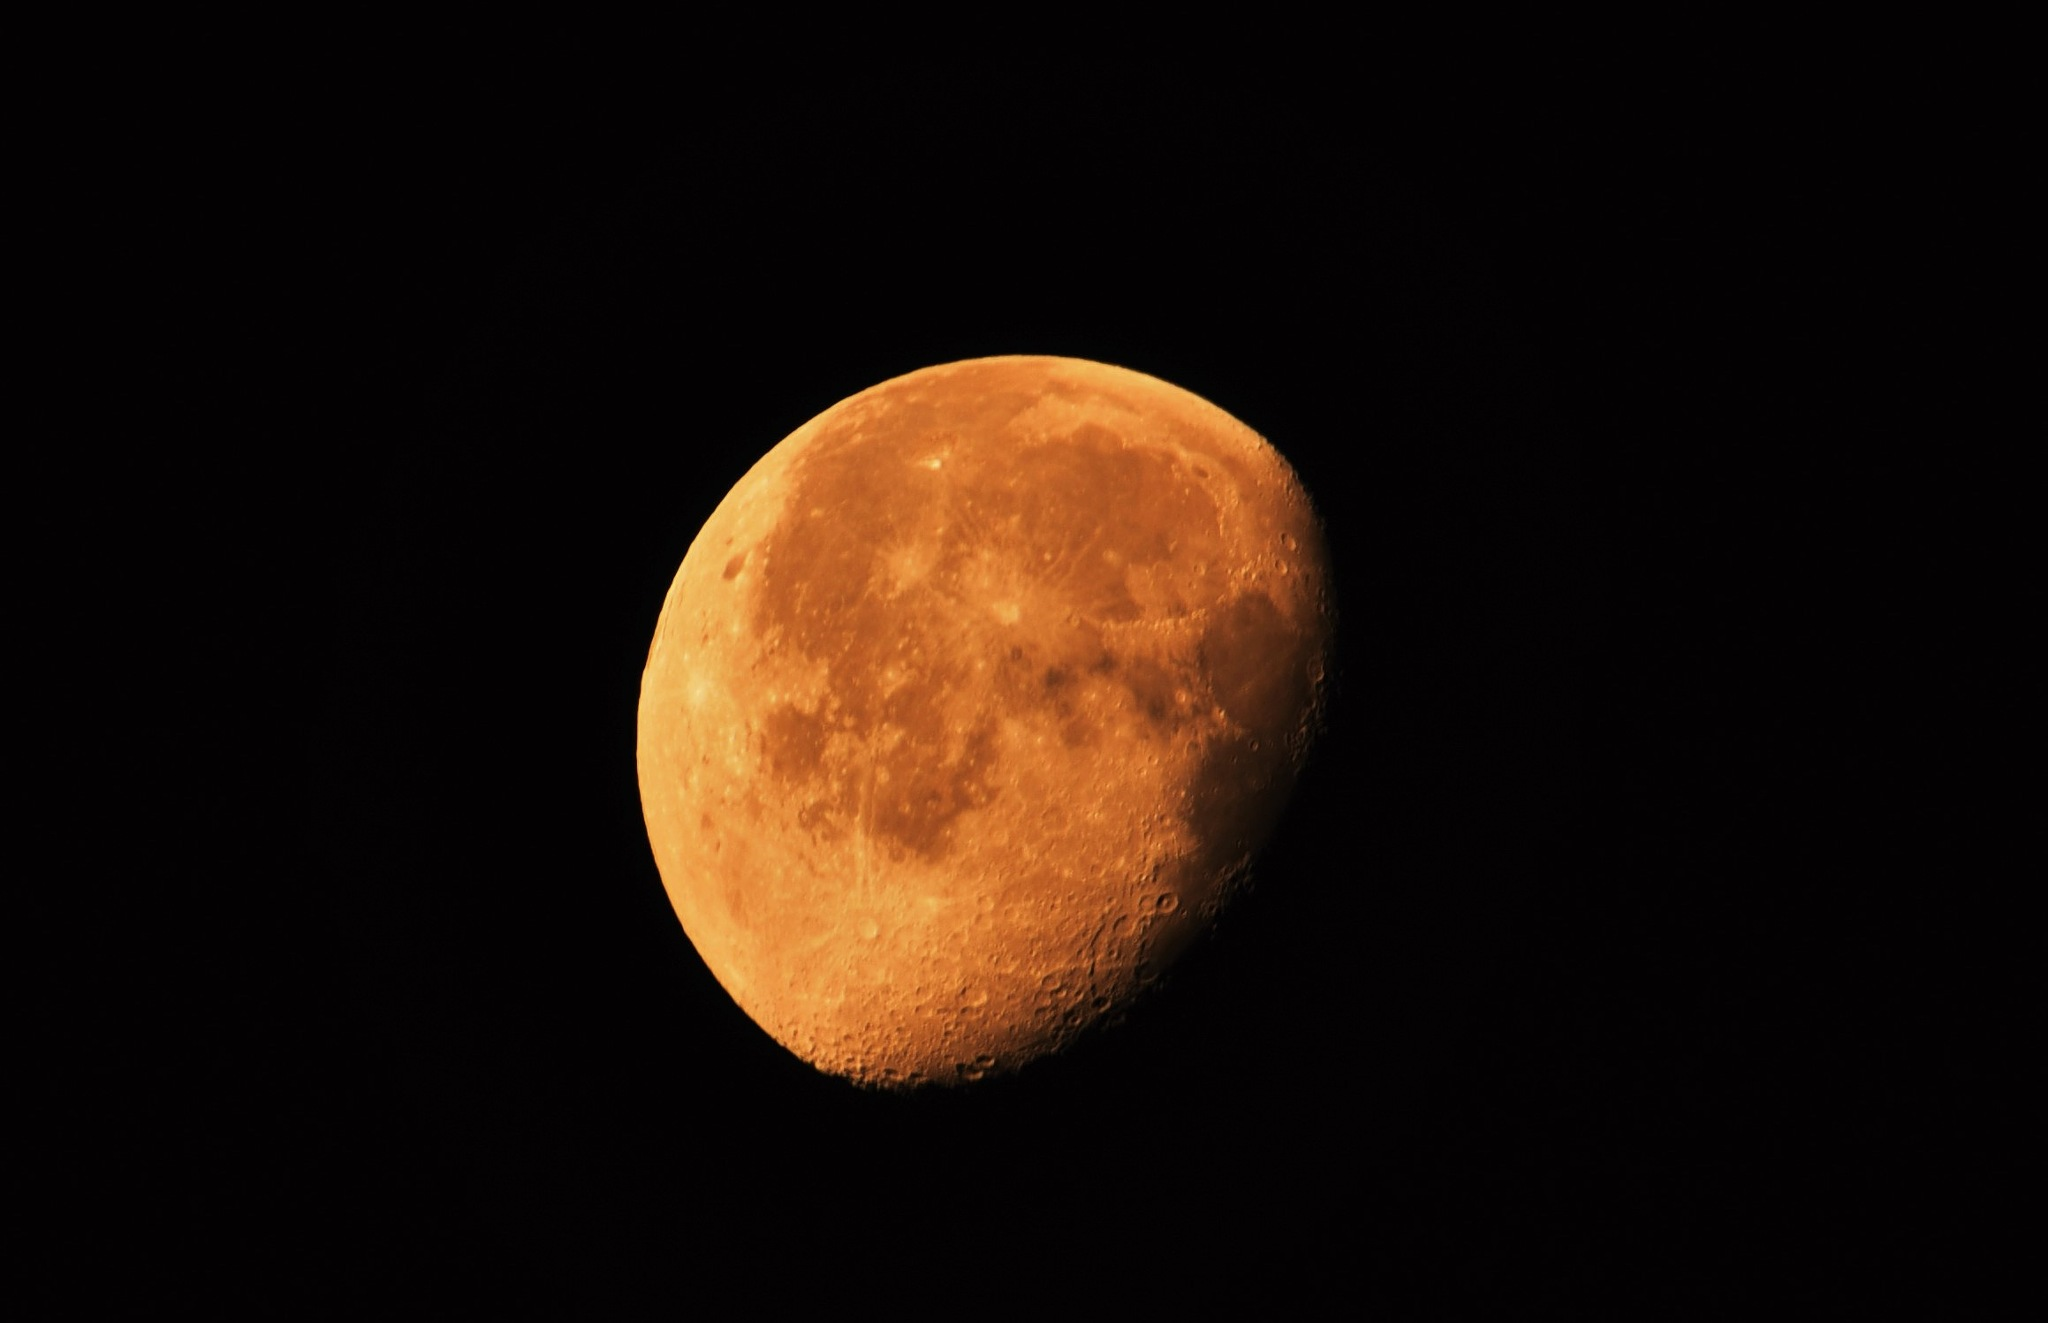 The nice side of the moon by hananel hebe